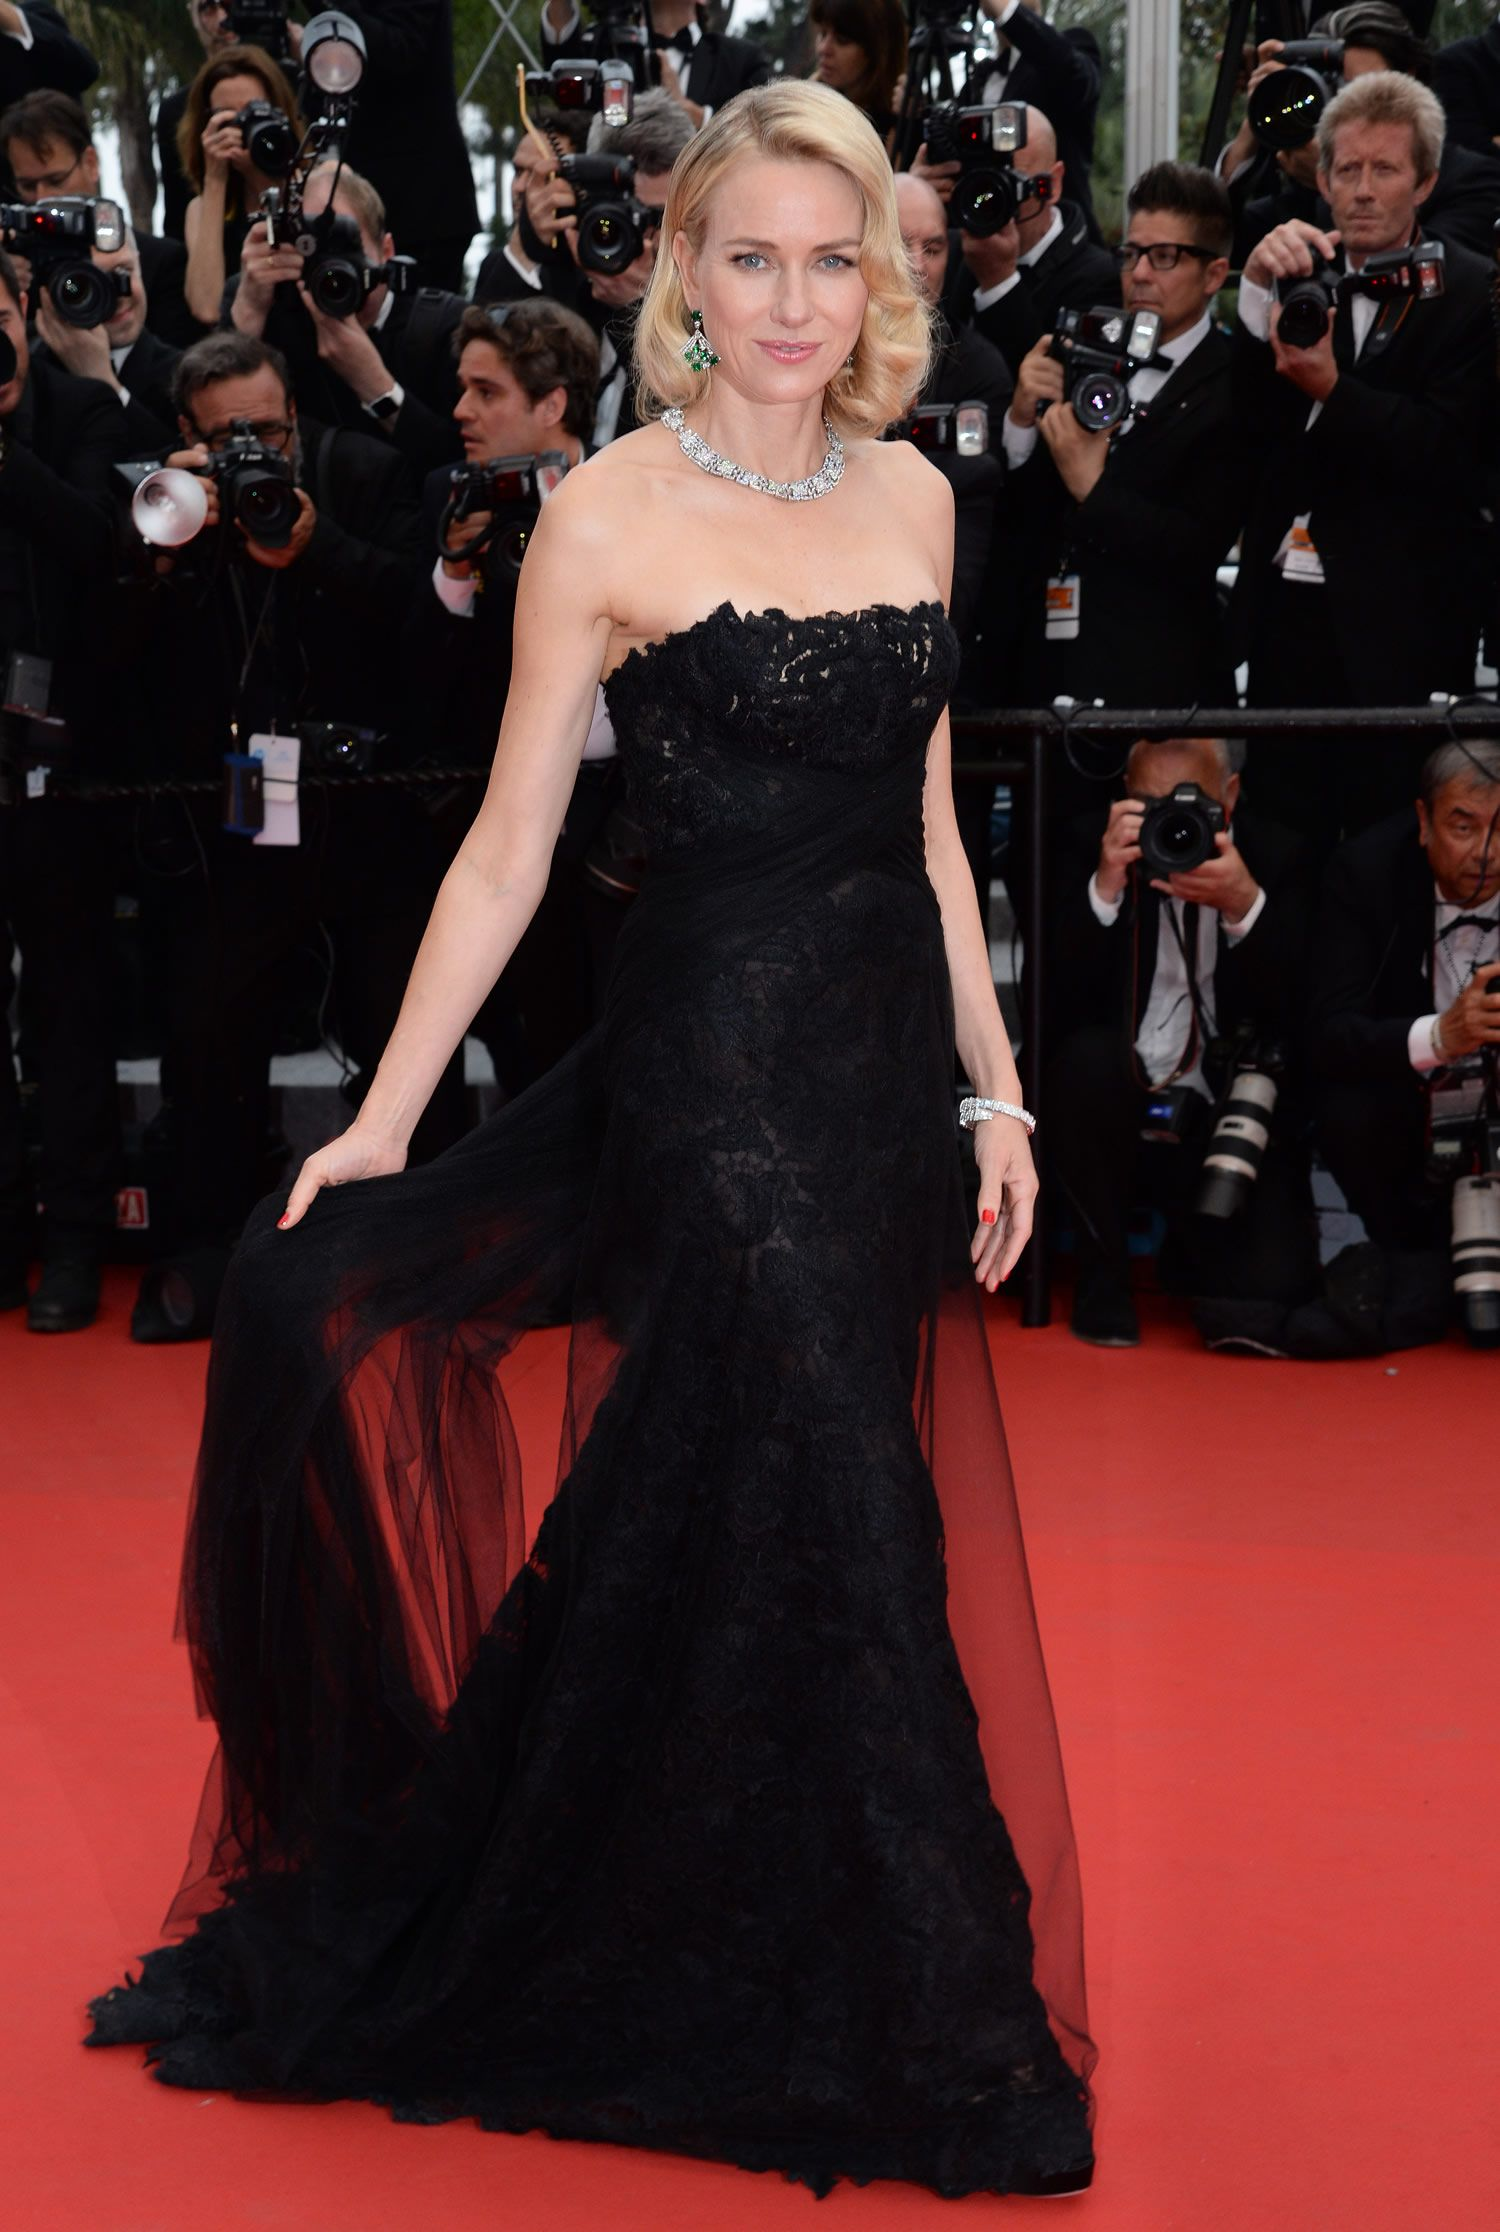 Naomi Watts in Ralph Lauren Gown at Mad Max: Fury Road Premiere at 2015 Cannes Film Festival